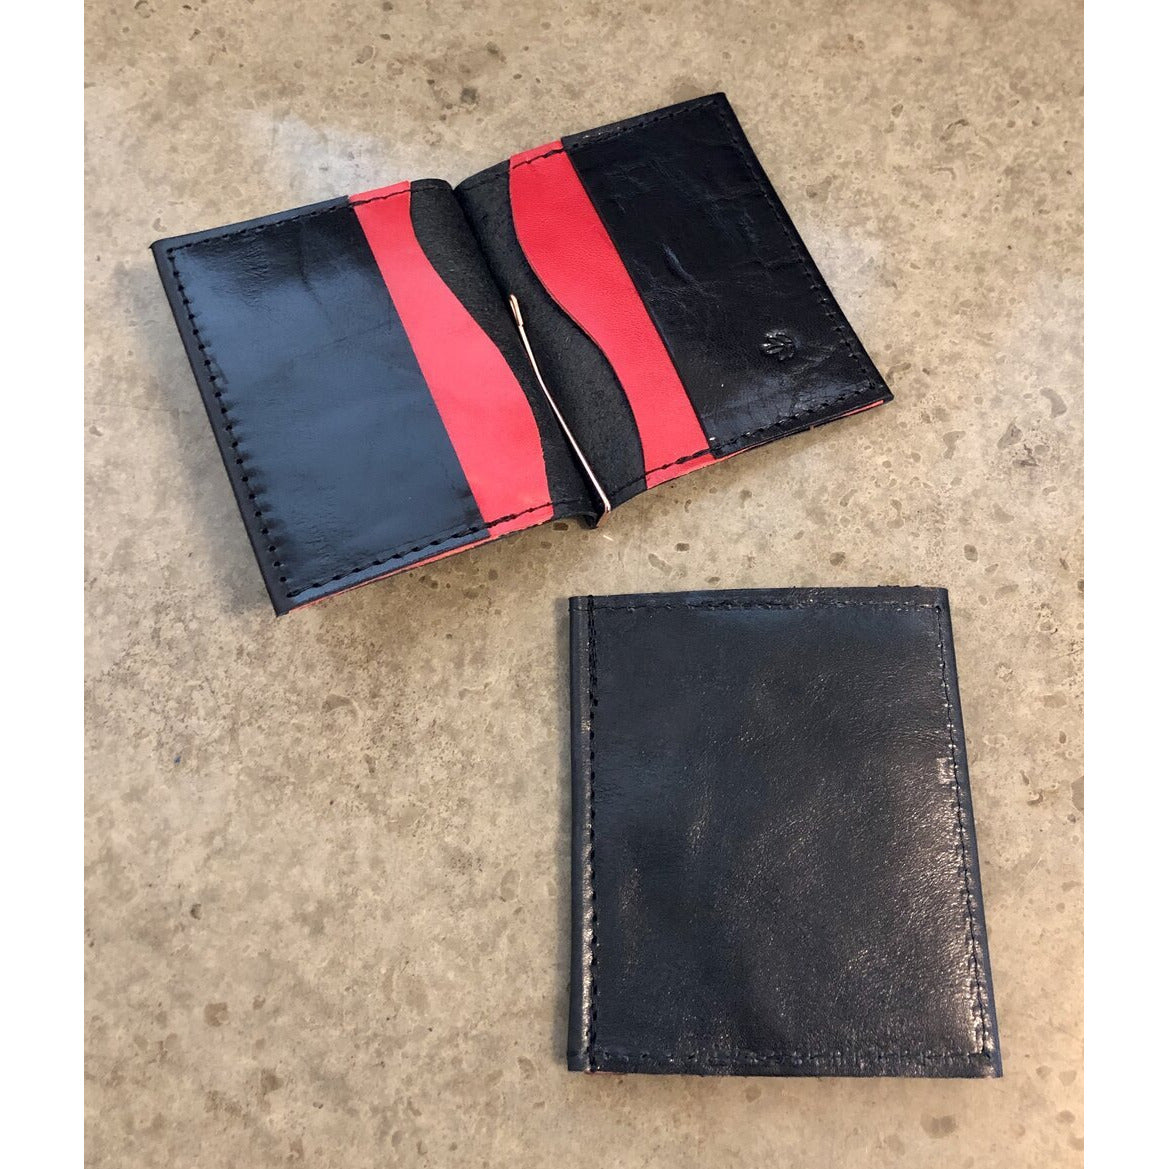 Leather Money Clip Wallet, black with red pockets